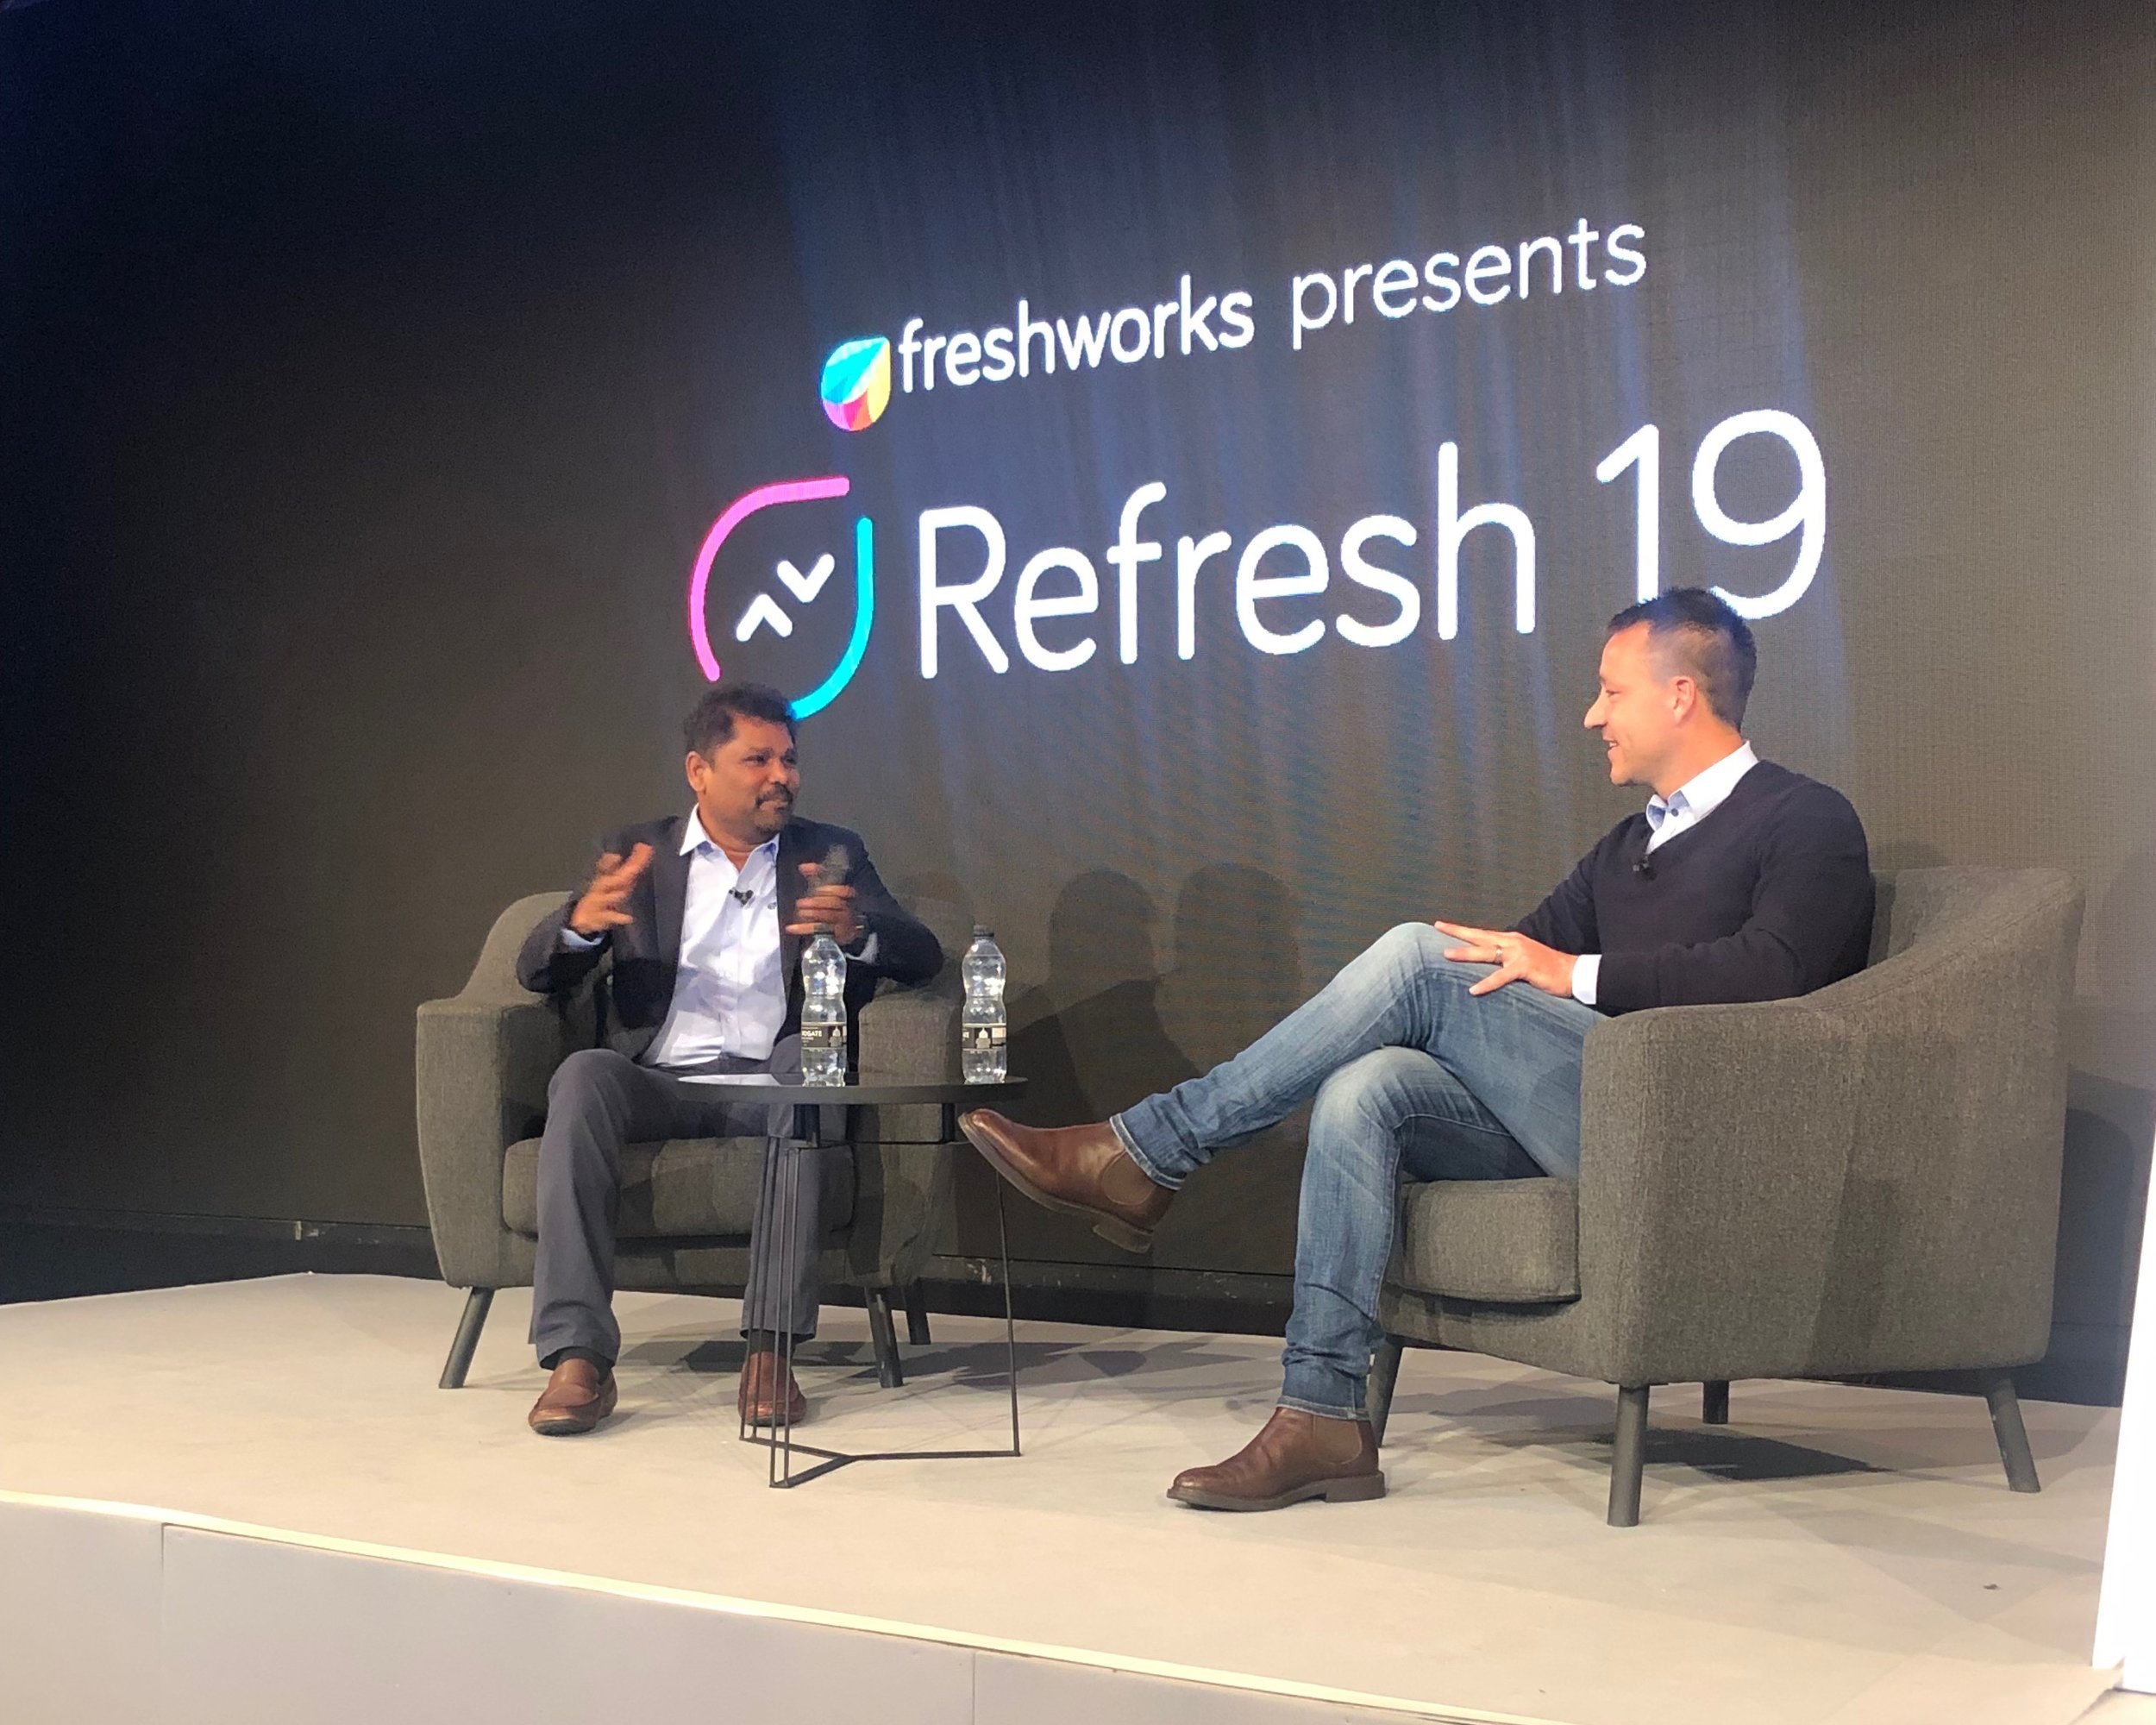 - Key speakers included English football coach and legend John Terry and Freshworks CEO Girish Mathrubootham, with many other truly impressive speakers and industry experts adding to the line up.